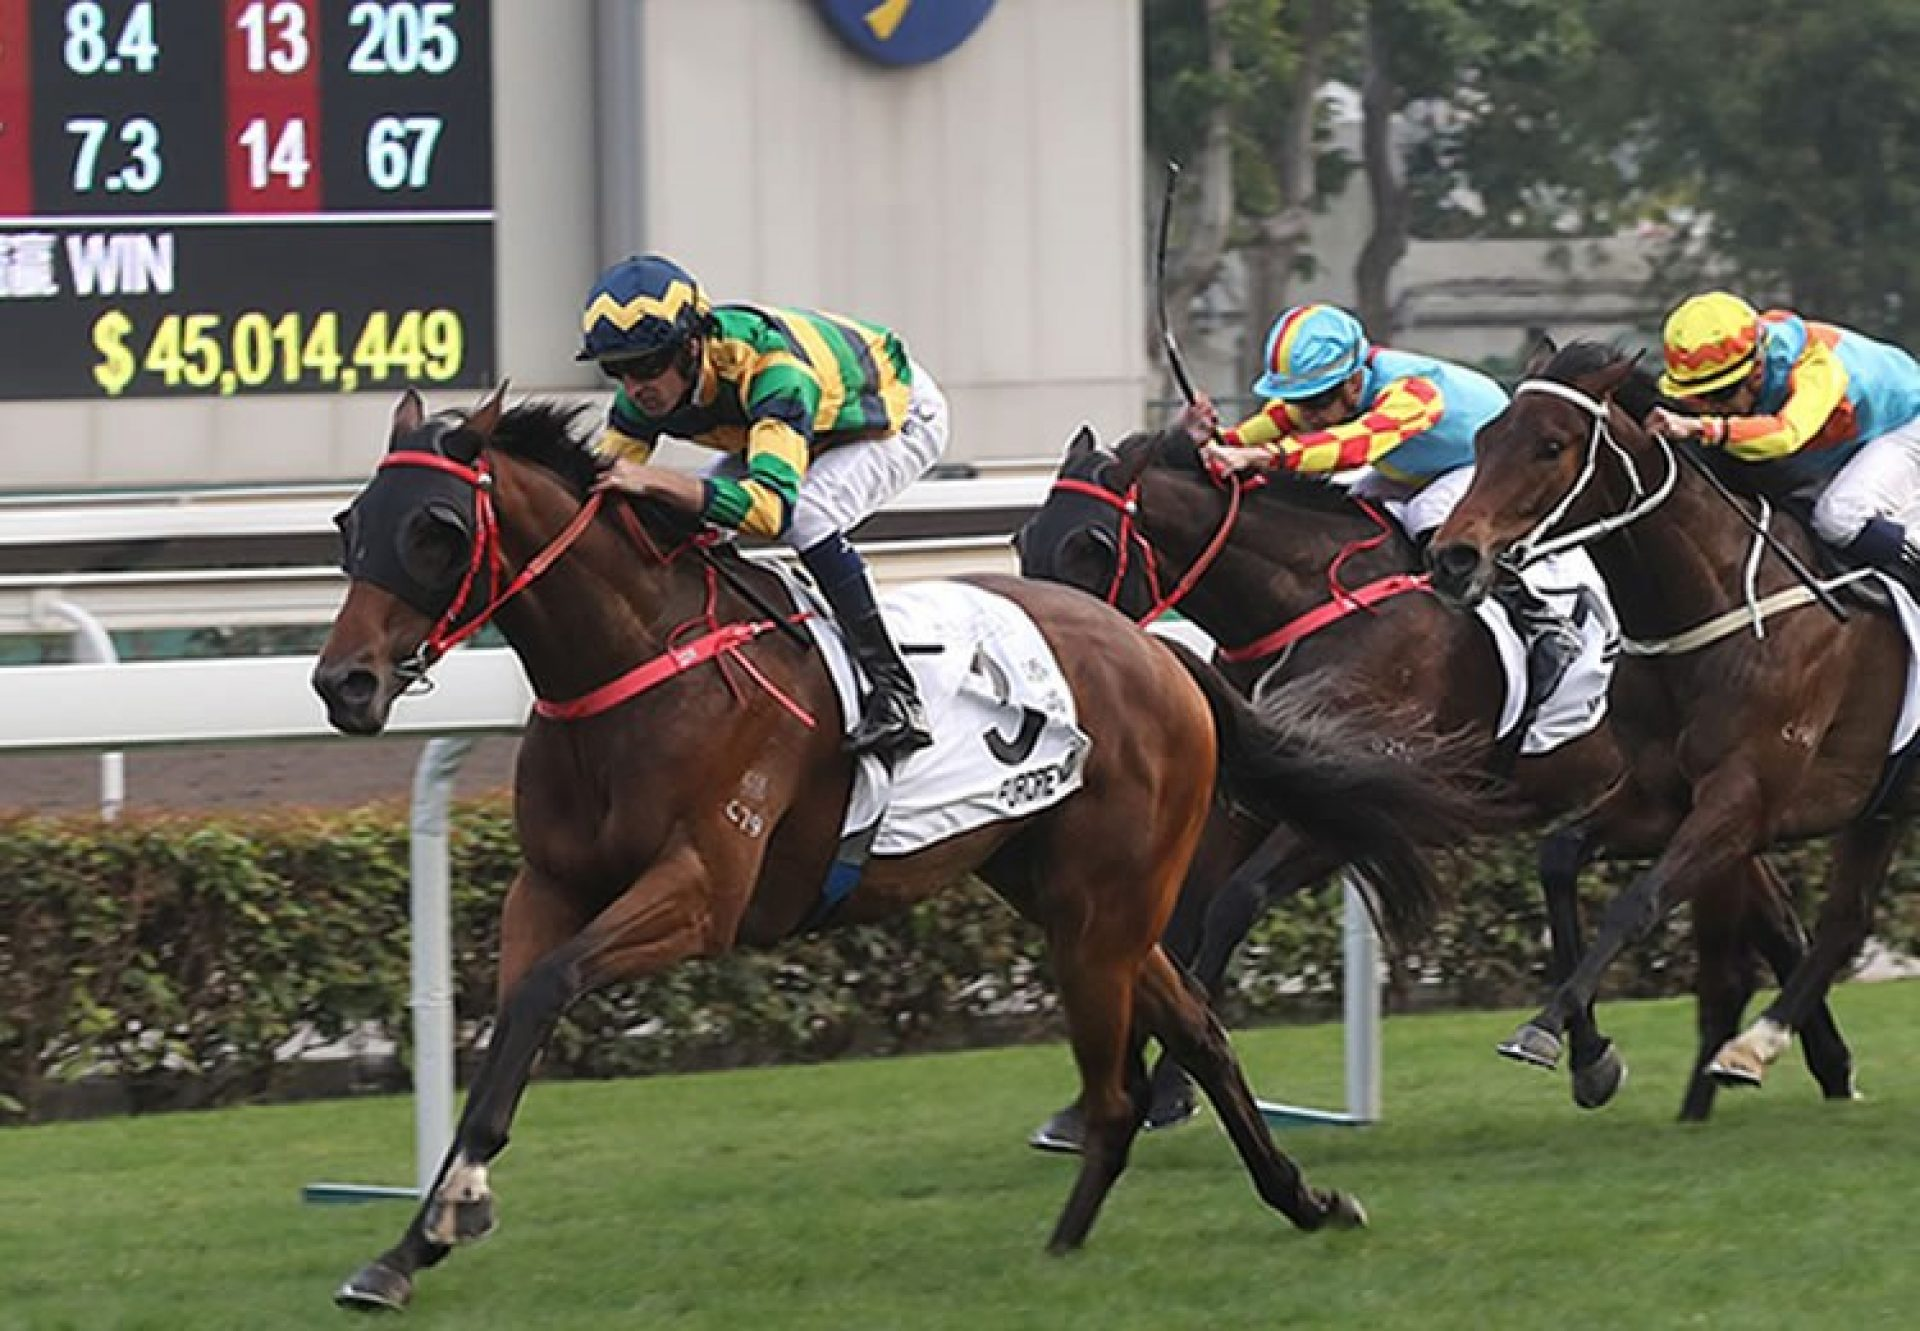 Furore (Pierro) winning the Hong Kong Classic Mile at Sha Tin